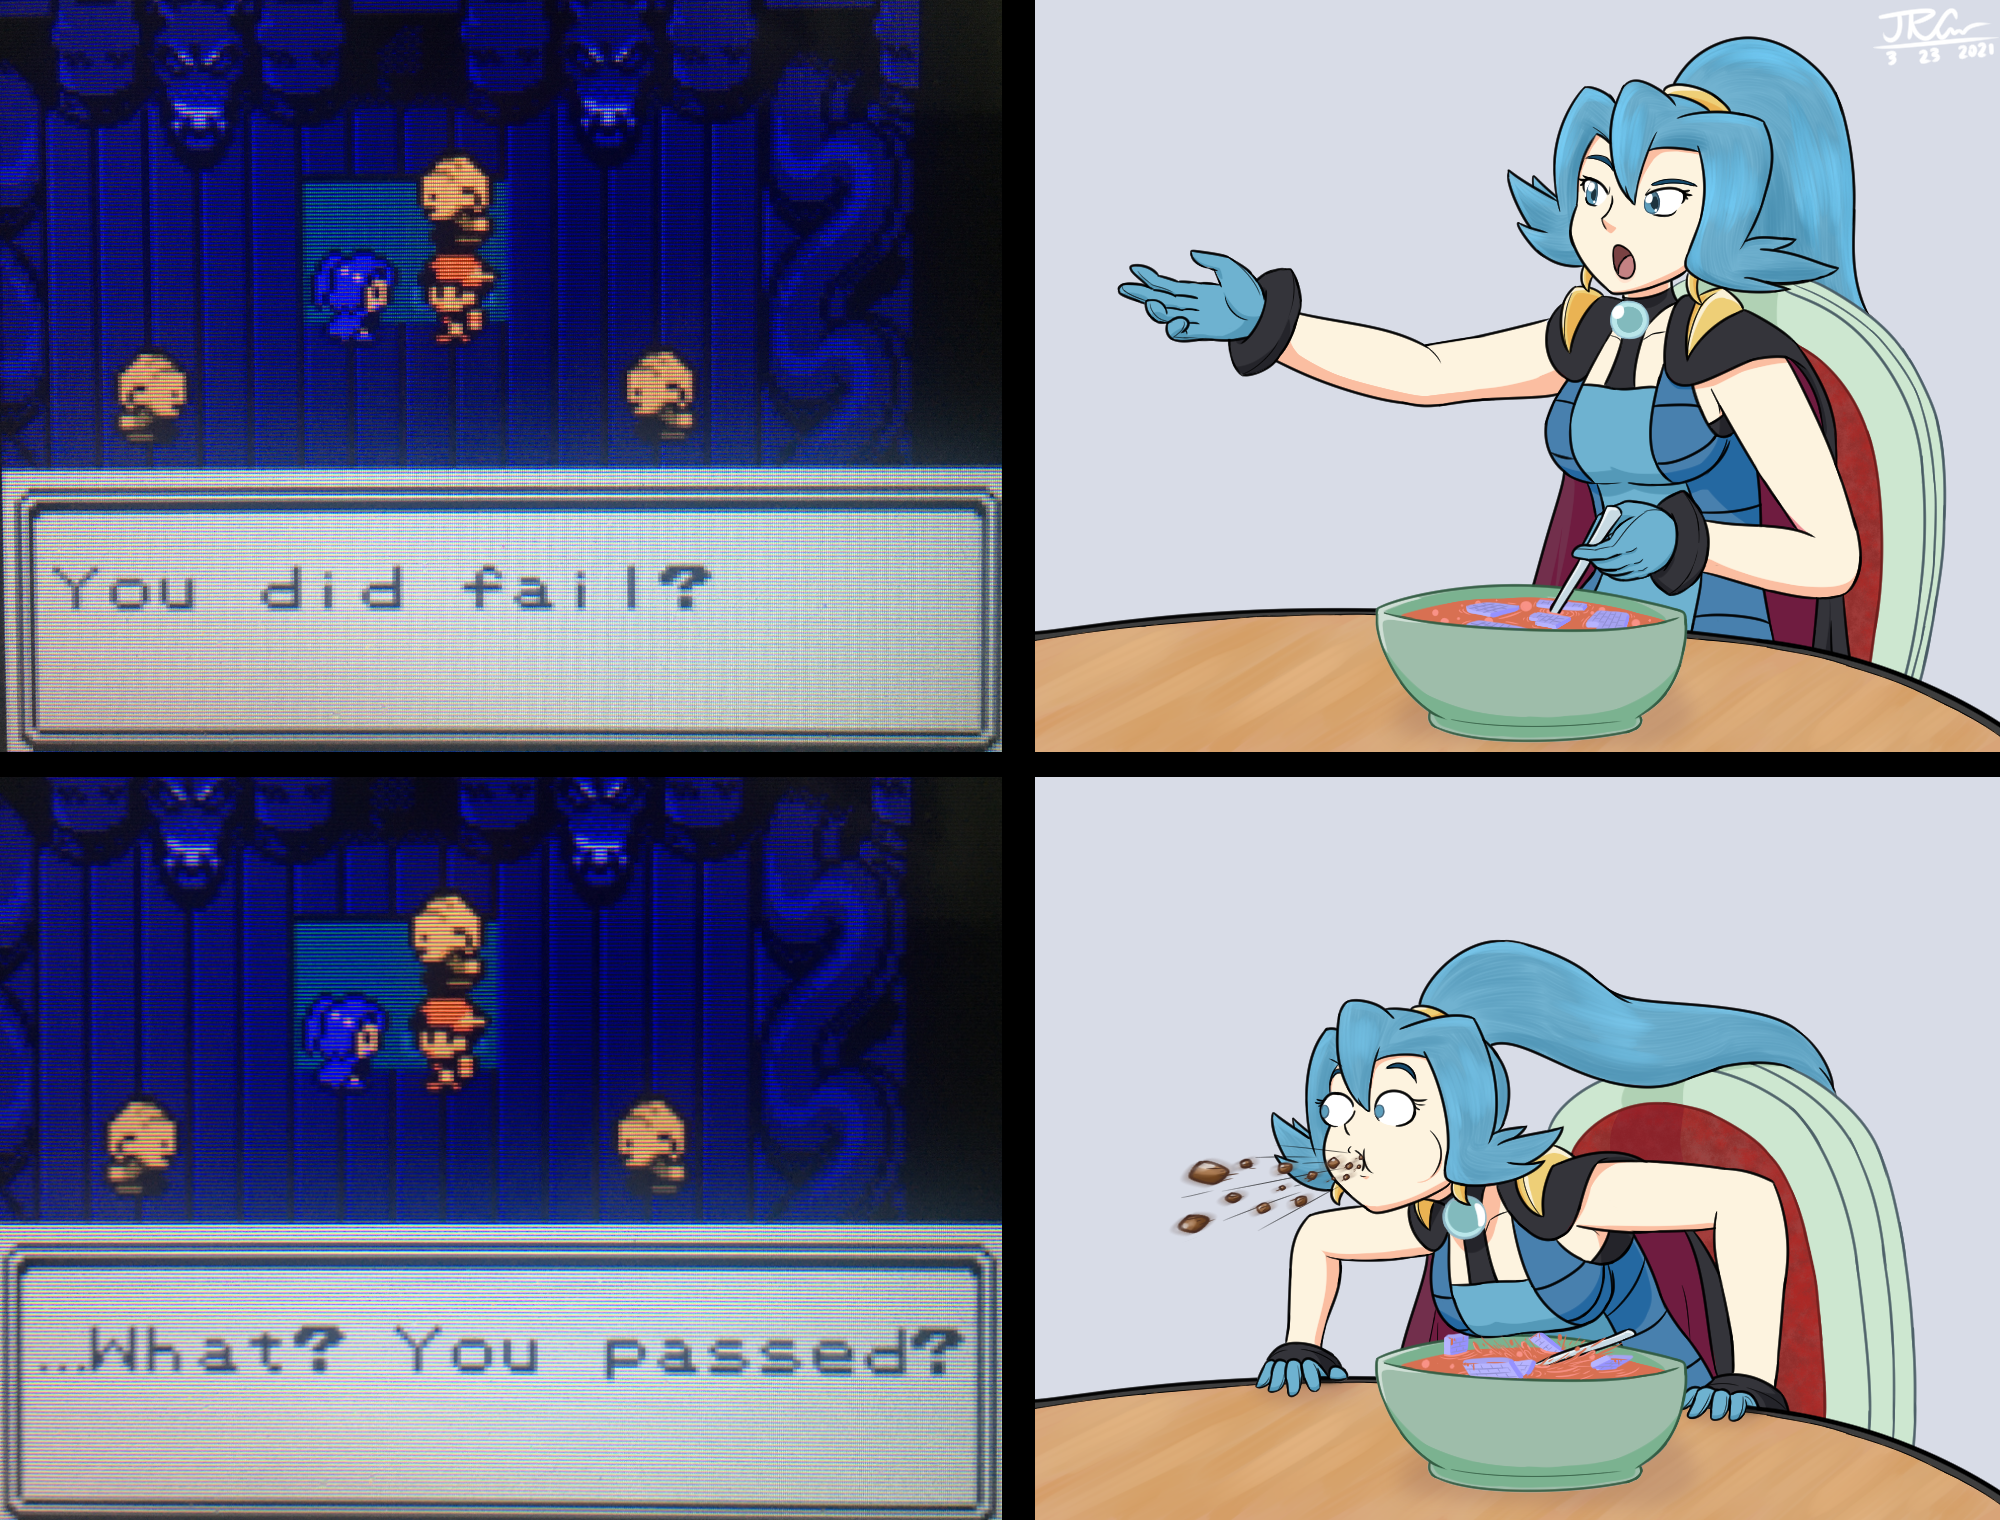 PKMN: They will never get into the League-